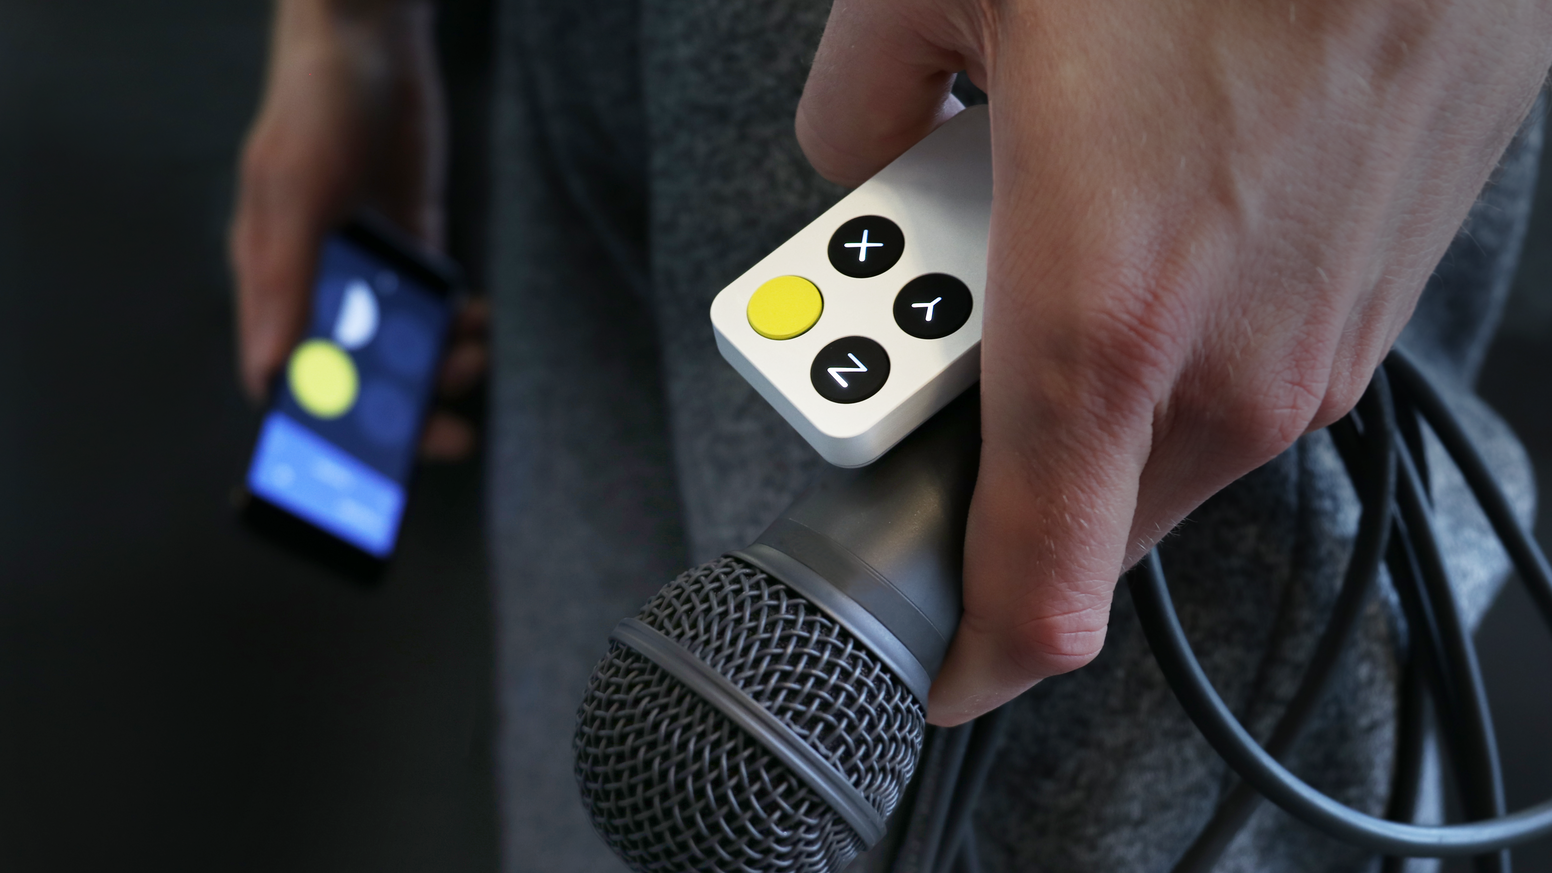 The first truly wireless instrument which enables singers to control effects on their voice through expressive movements.